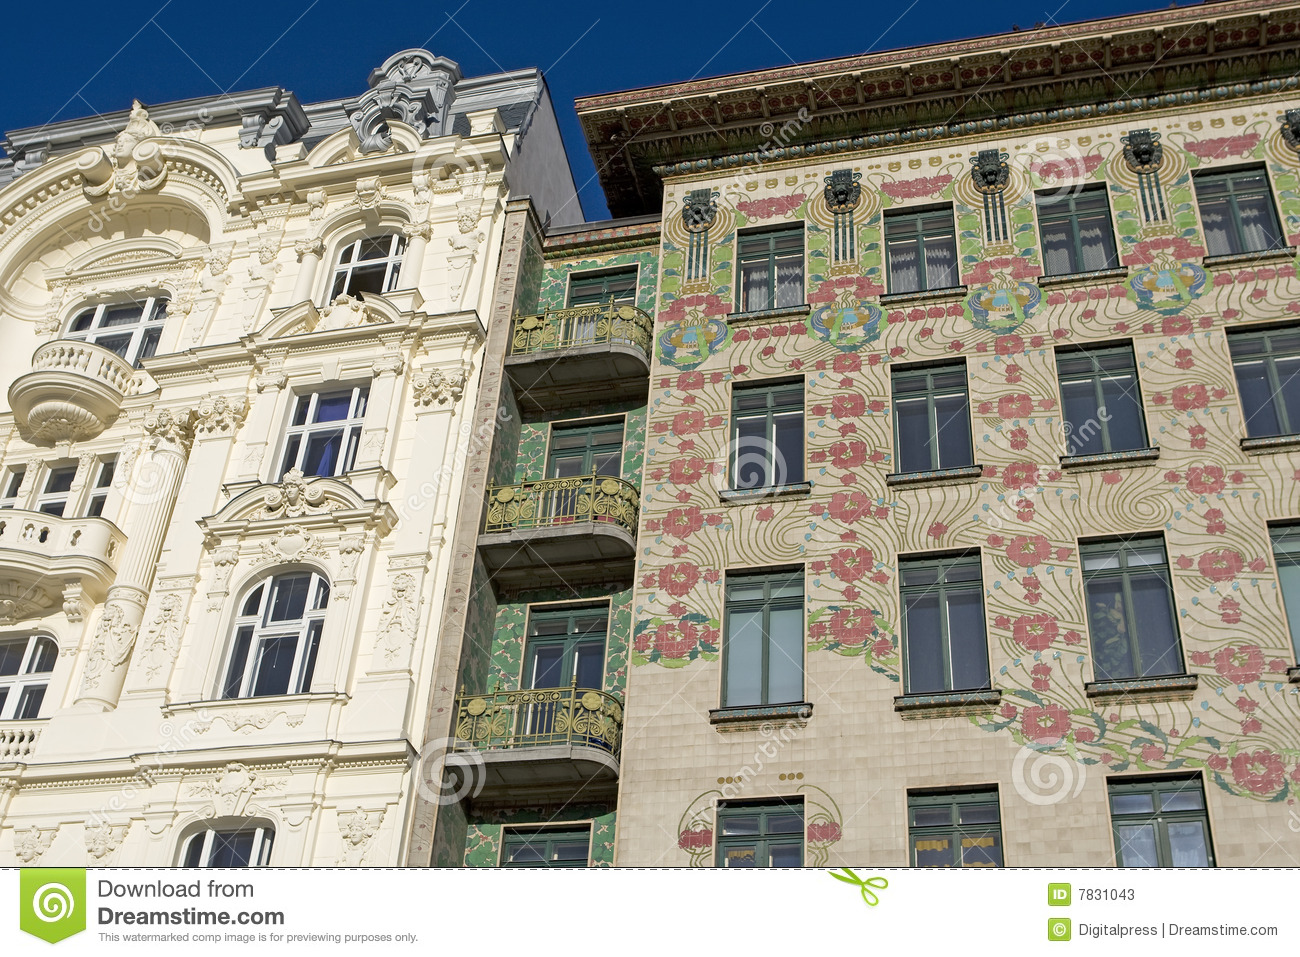 Viennese architecture art nouveau otto wagner stock for Architecture vienne